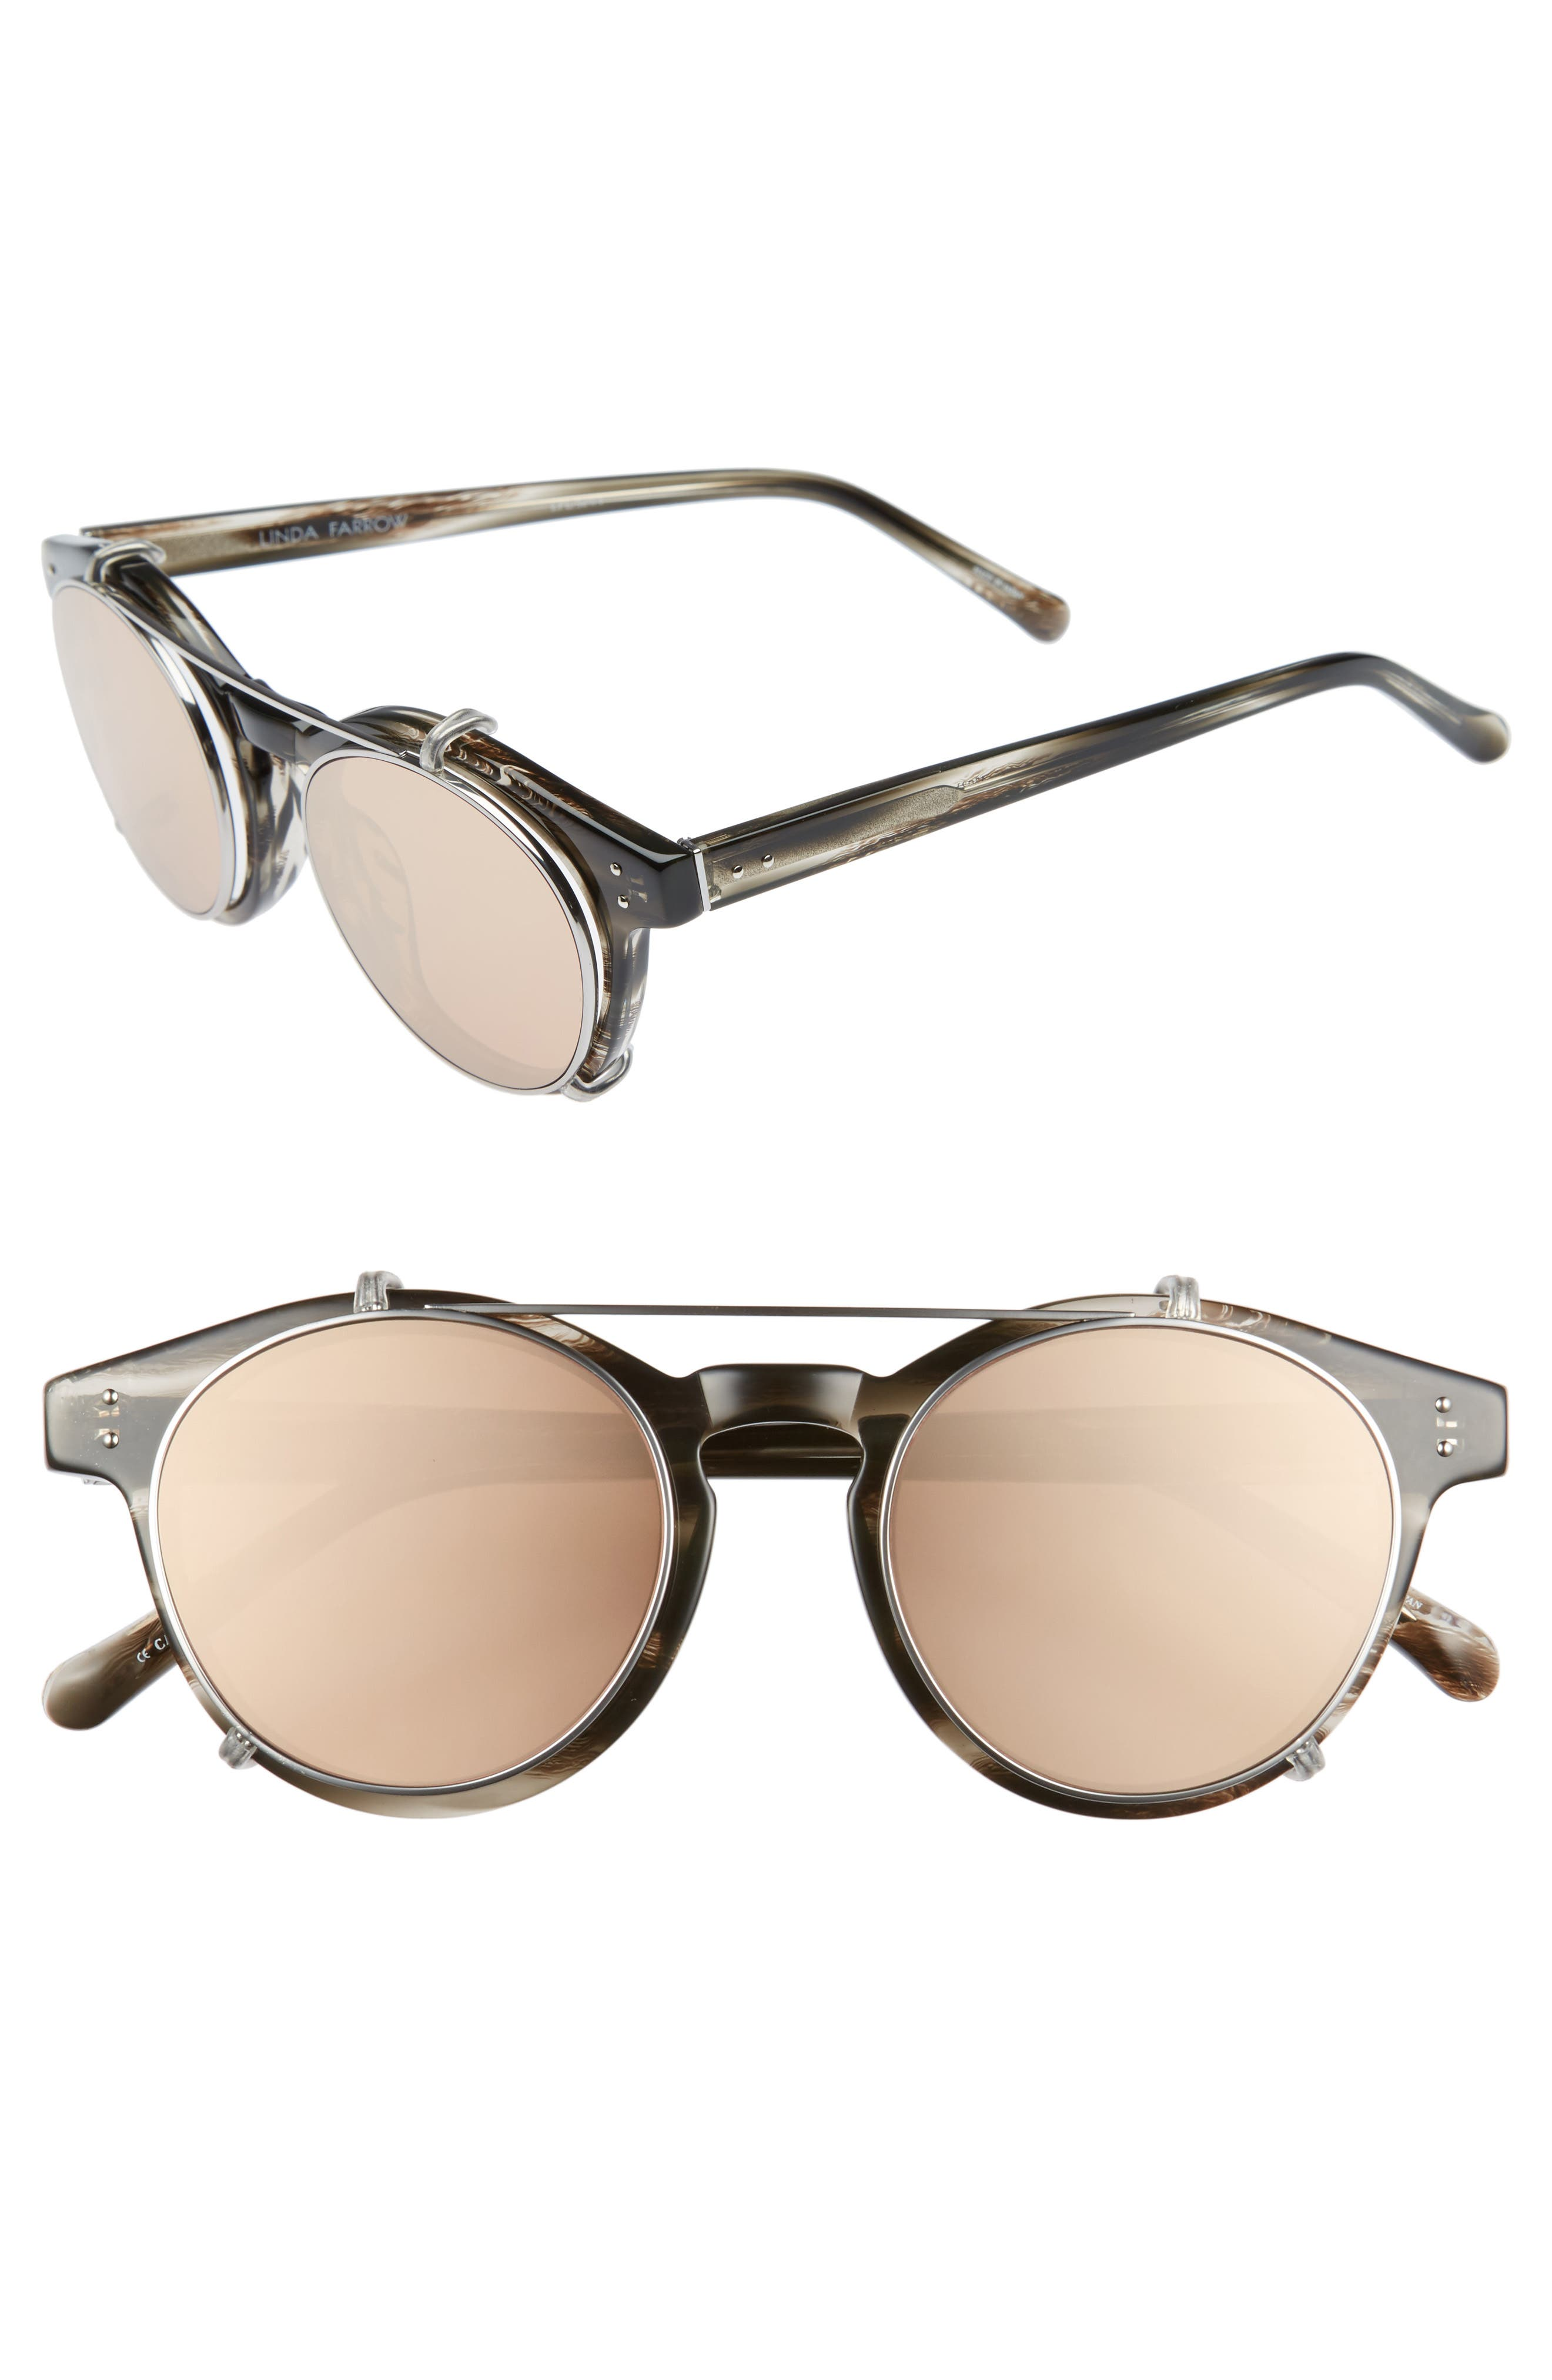 47mm Optical Glasses with Clip-On 18 Karat Rose Gold Trim Sunglasses,                             Main thumbnail 1, color,                             020